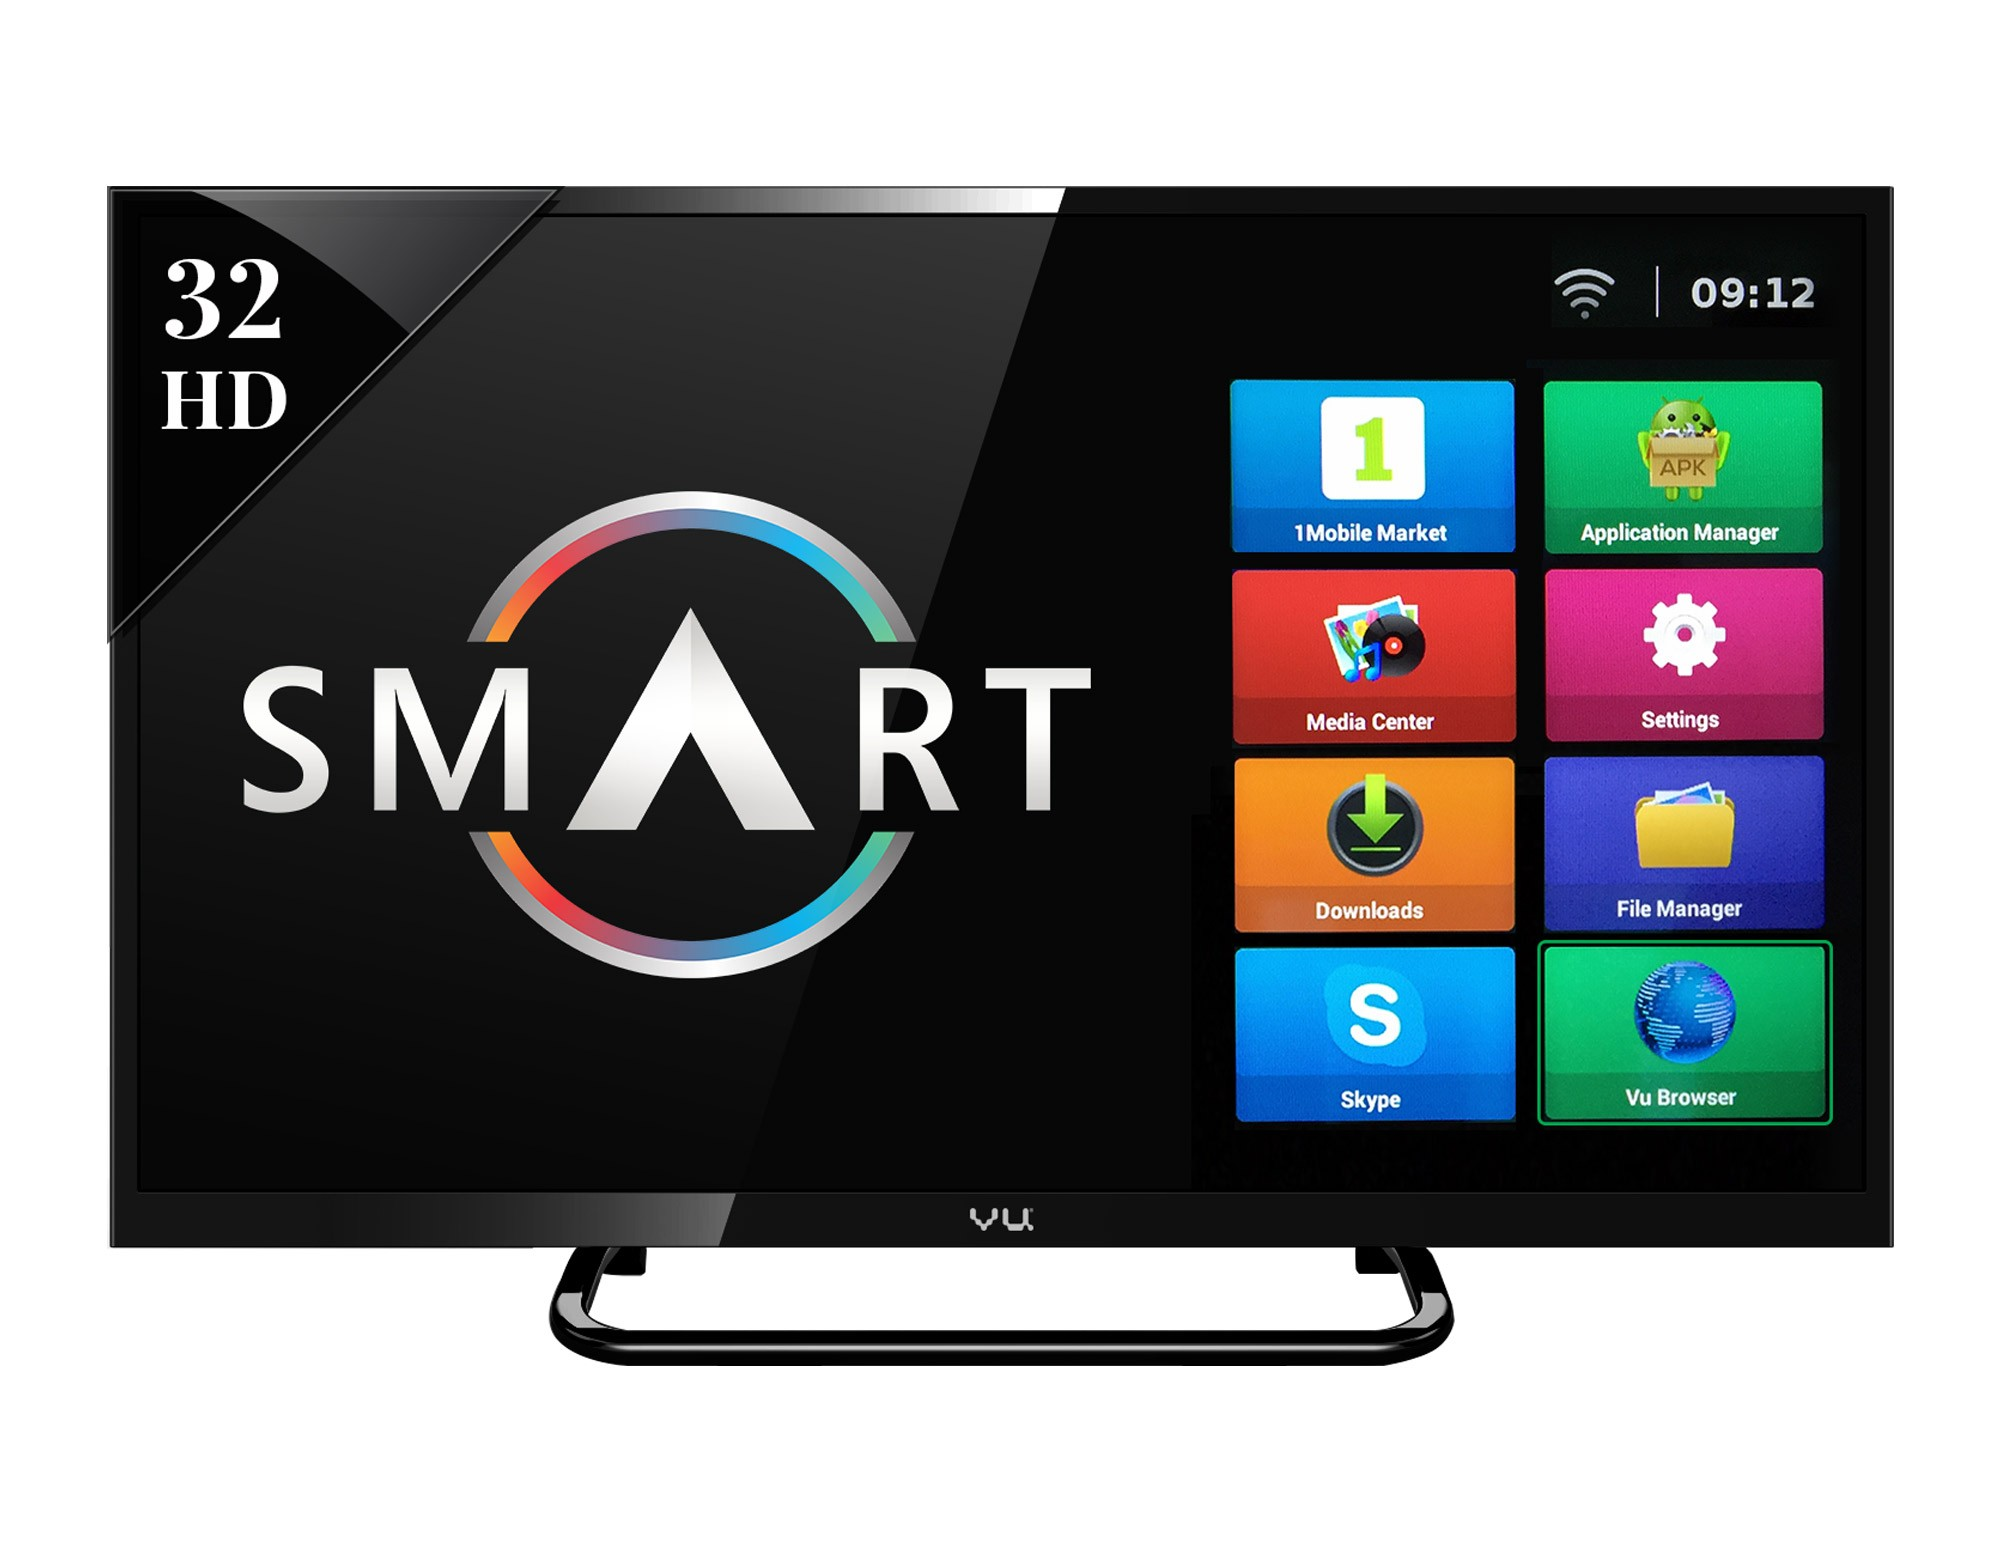 vu-play-32-smart-hd-led-tv